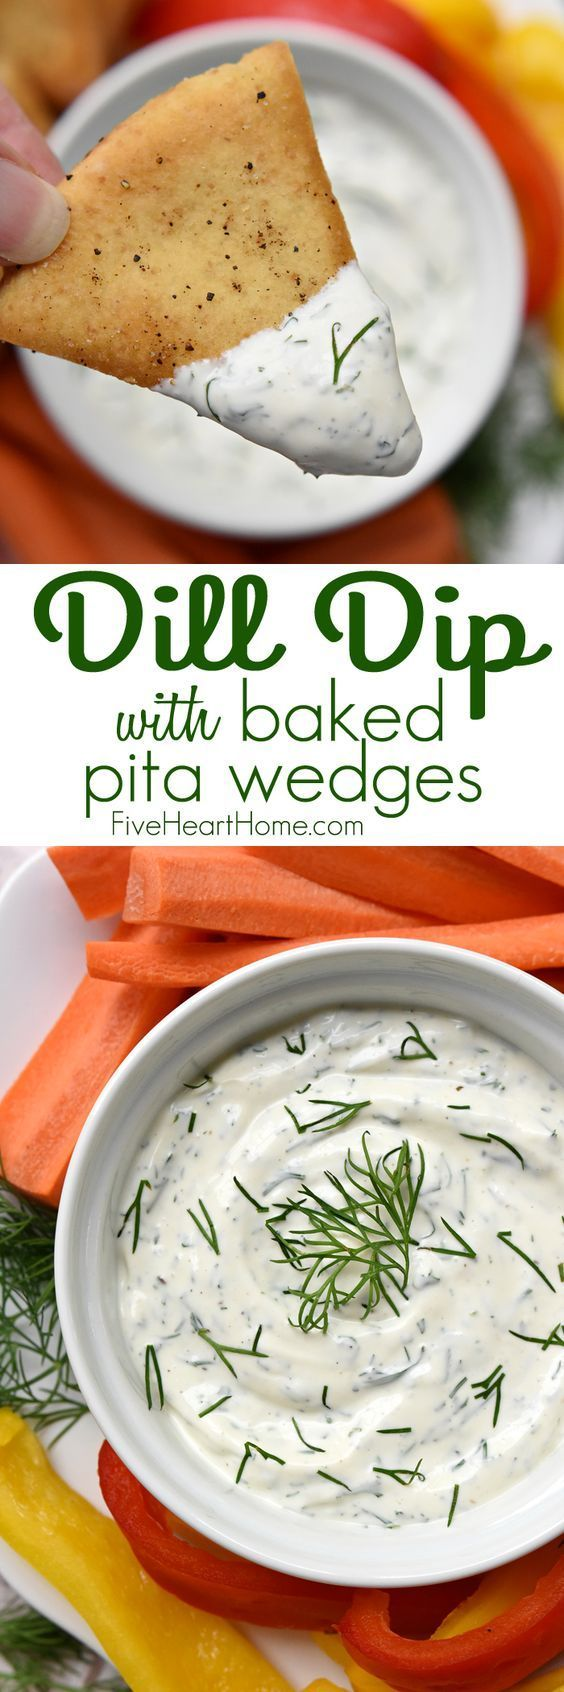 Dreamy Dill Dip with Baked Pita Wedges ~ simple and delicious, this dip features a base of Greek yogurt and sour cream flavored with fresh dill, making it perfect for a variety of dippers, from crunch